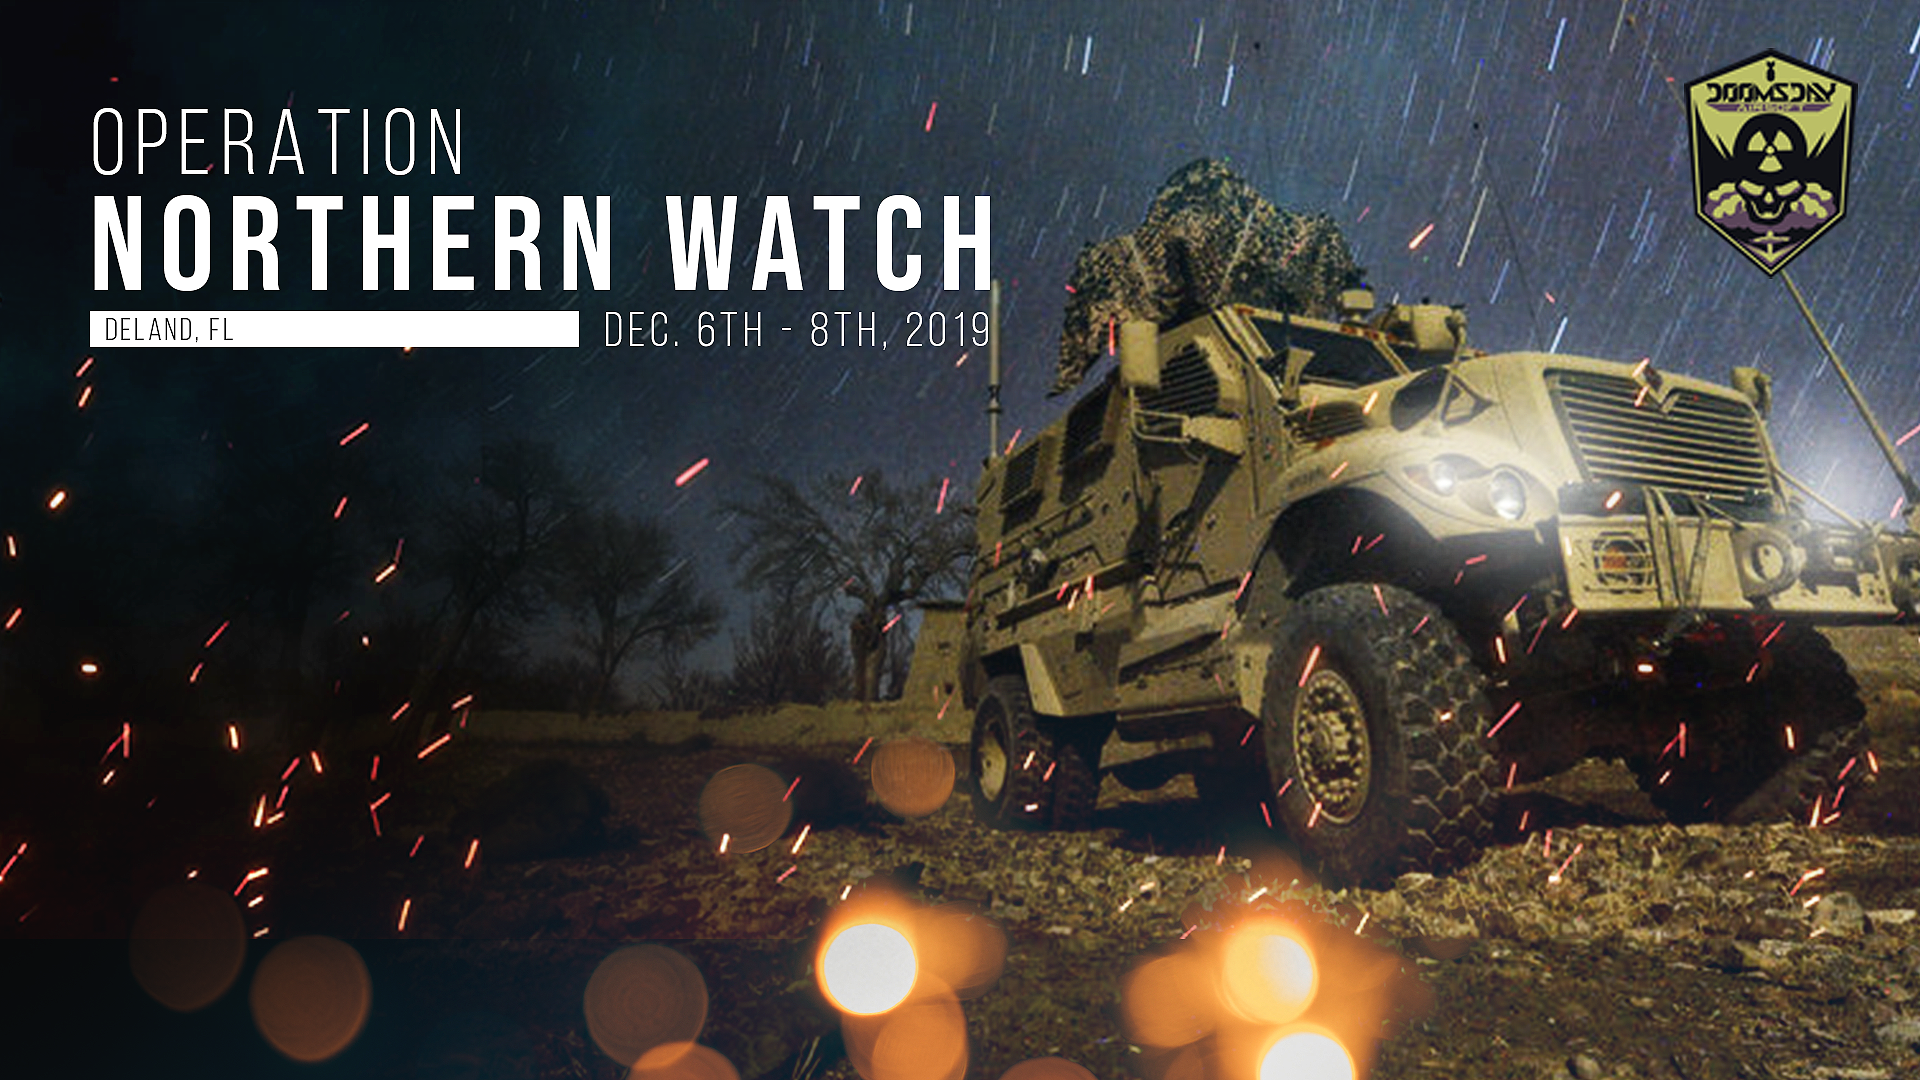 Northern watch face book image